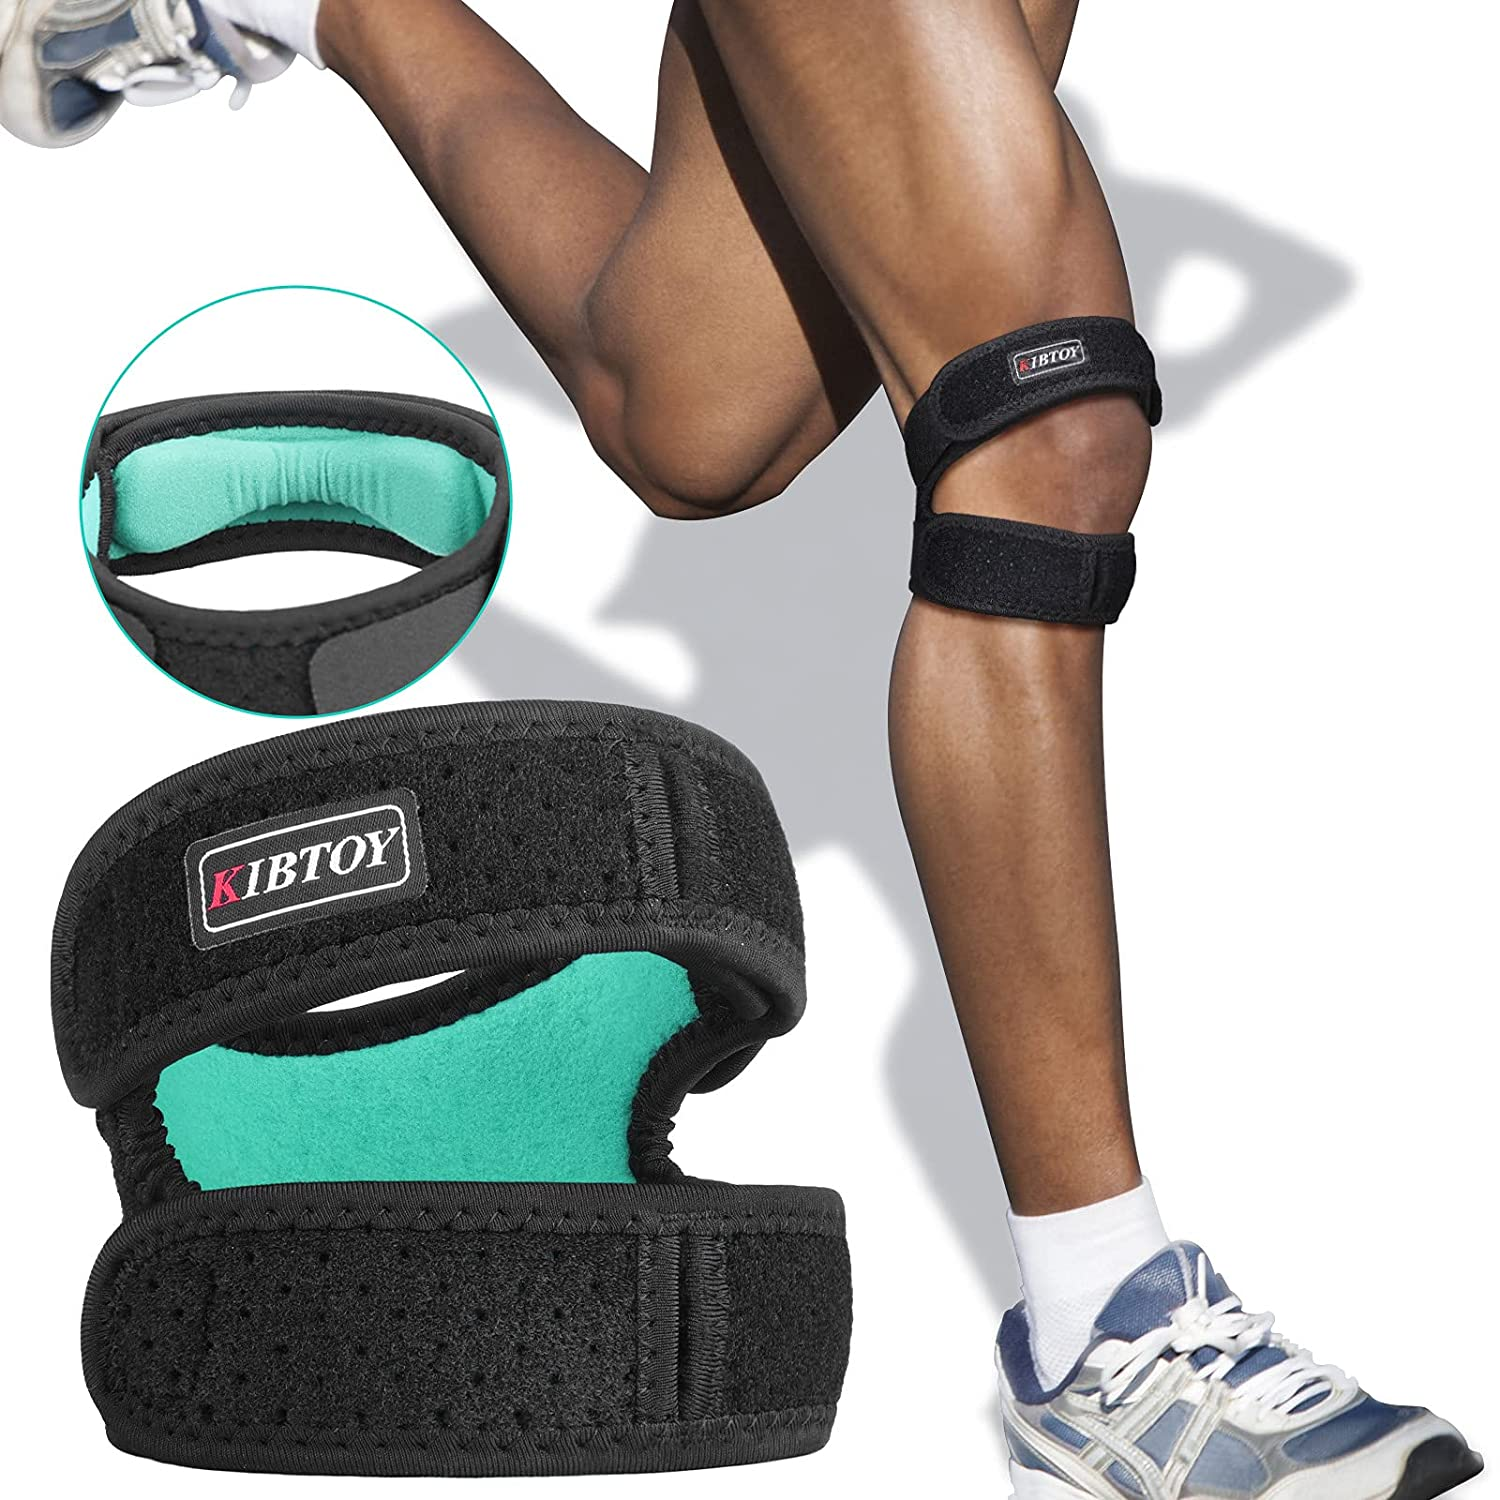 Boston Mall Professional Knee Brace KIBTOY Compress with Double Support NEW before selling ☆